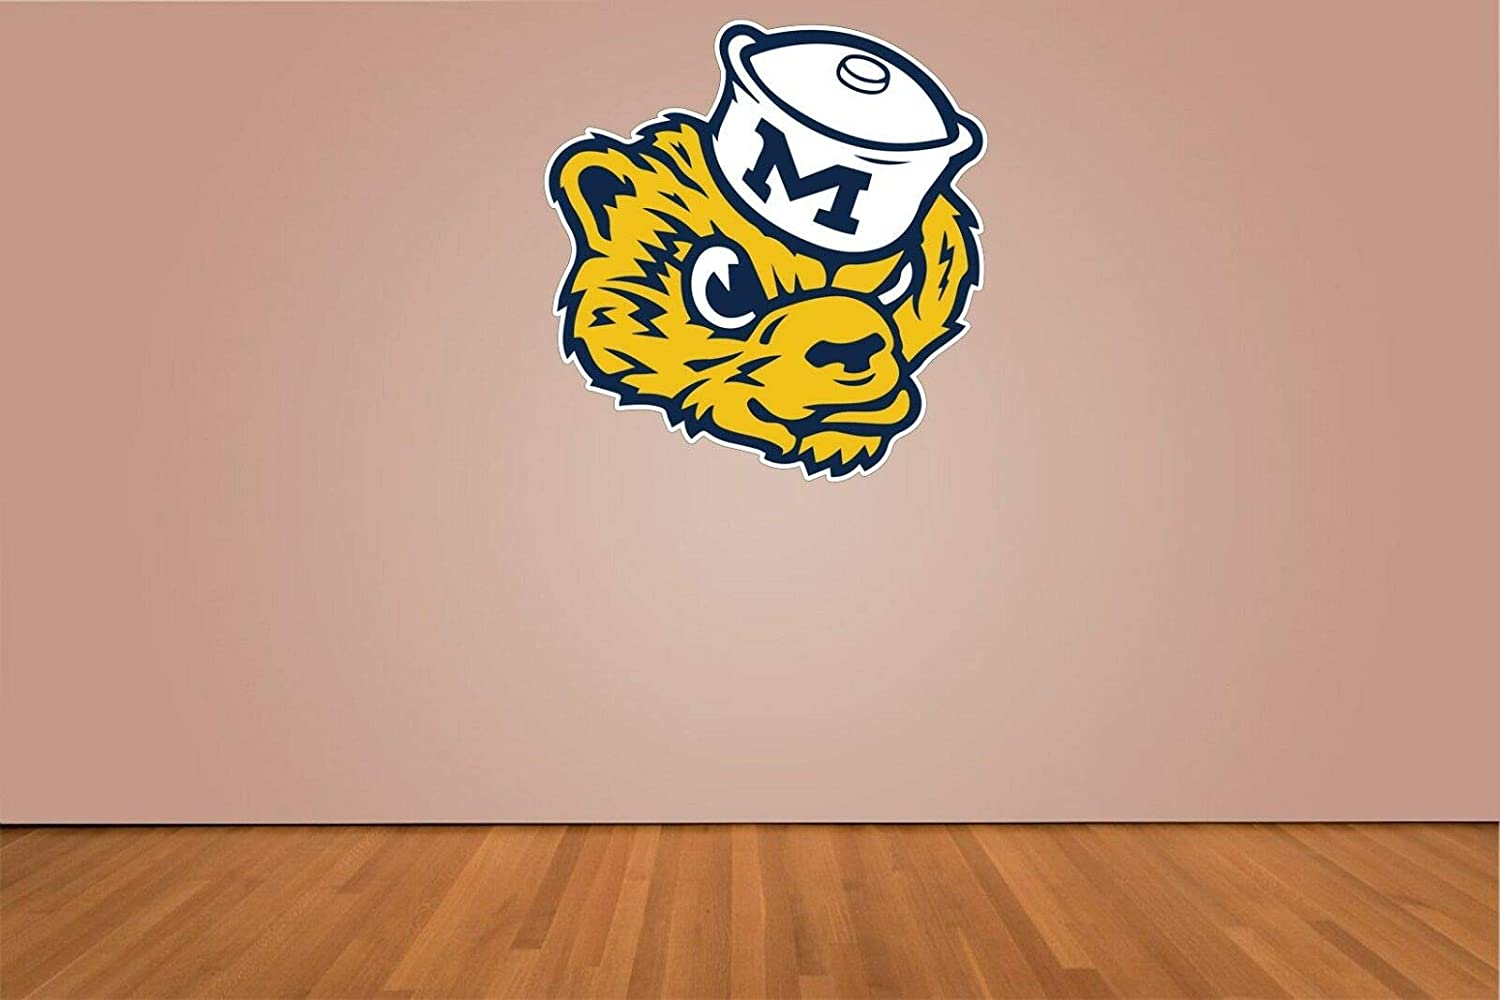 Car or Laptop Michigan Wolverines Vinyl Stickers Logo ////Any-Size////University of Michigan Football Stickers for Truck